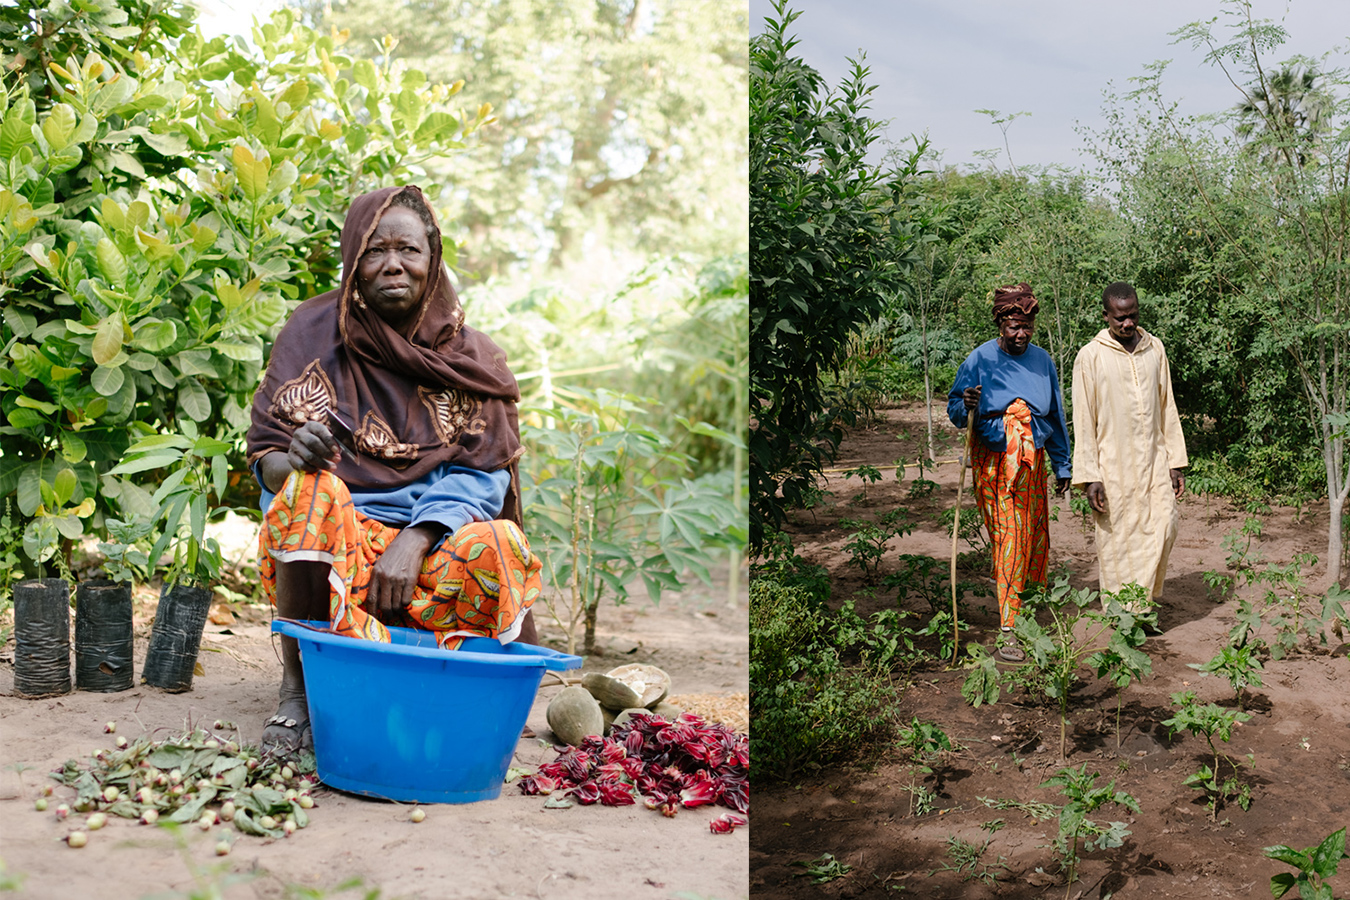 Senegal-Ecosia-Forest-Garden-Agroforestry-trees-climate-change--80-of-103-